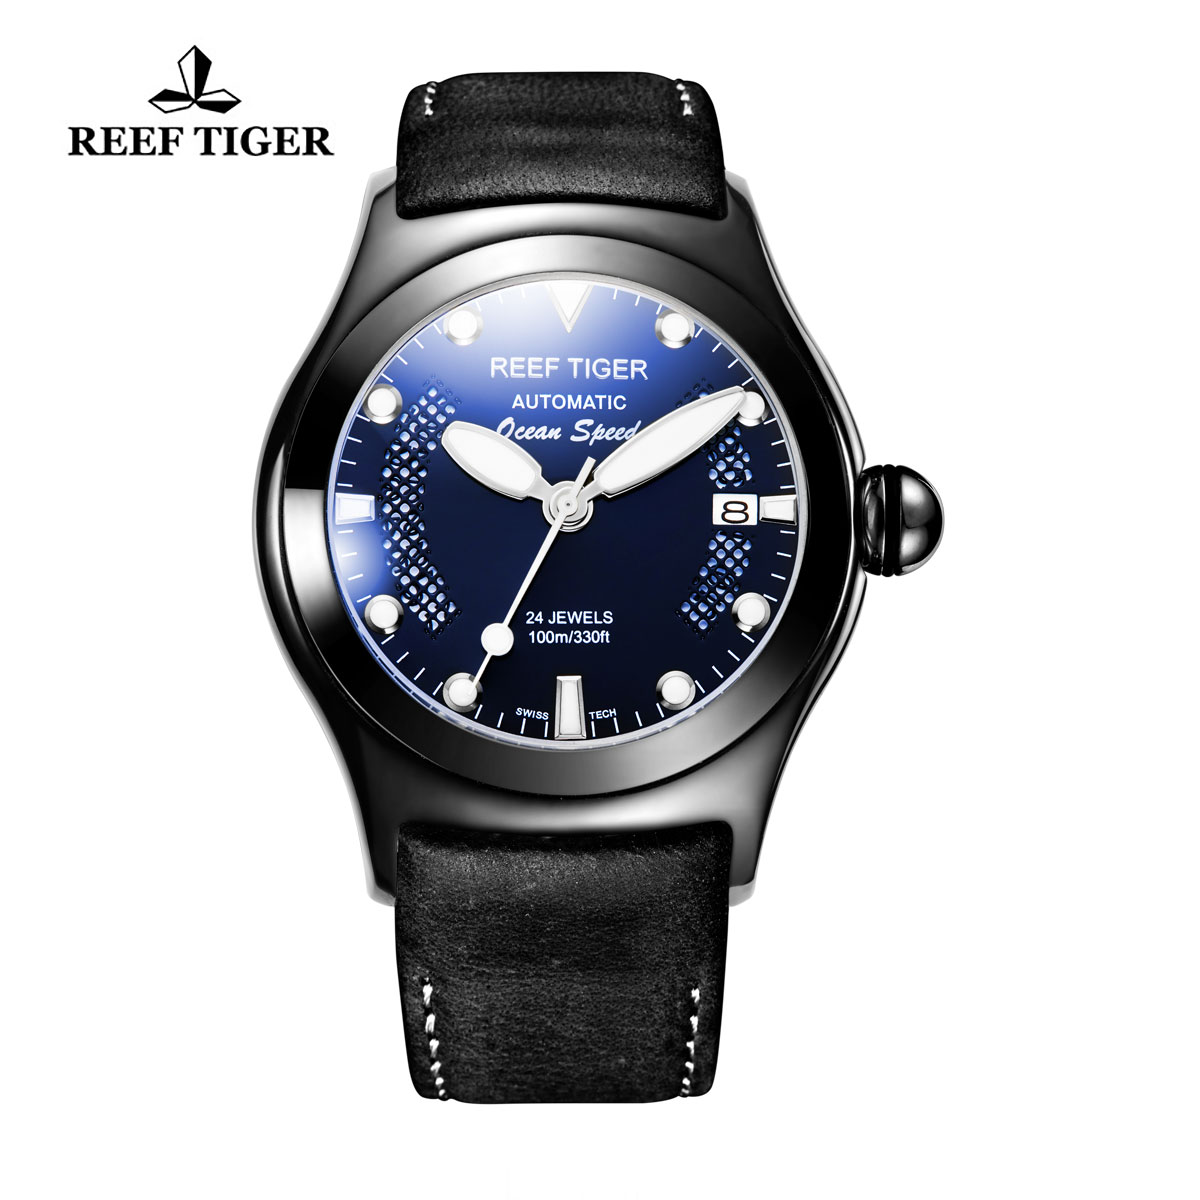 Reef Tiger Ocean Speed Sport Watches Automatic PVD Case Black Leather Blue Dial Watch RGA704-BLBW